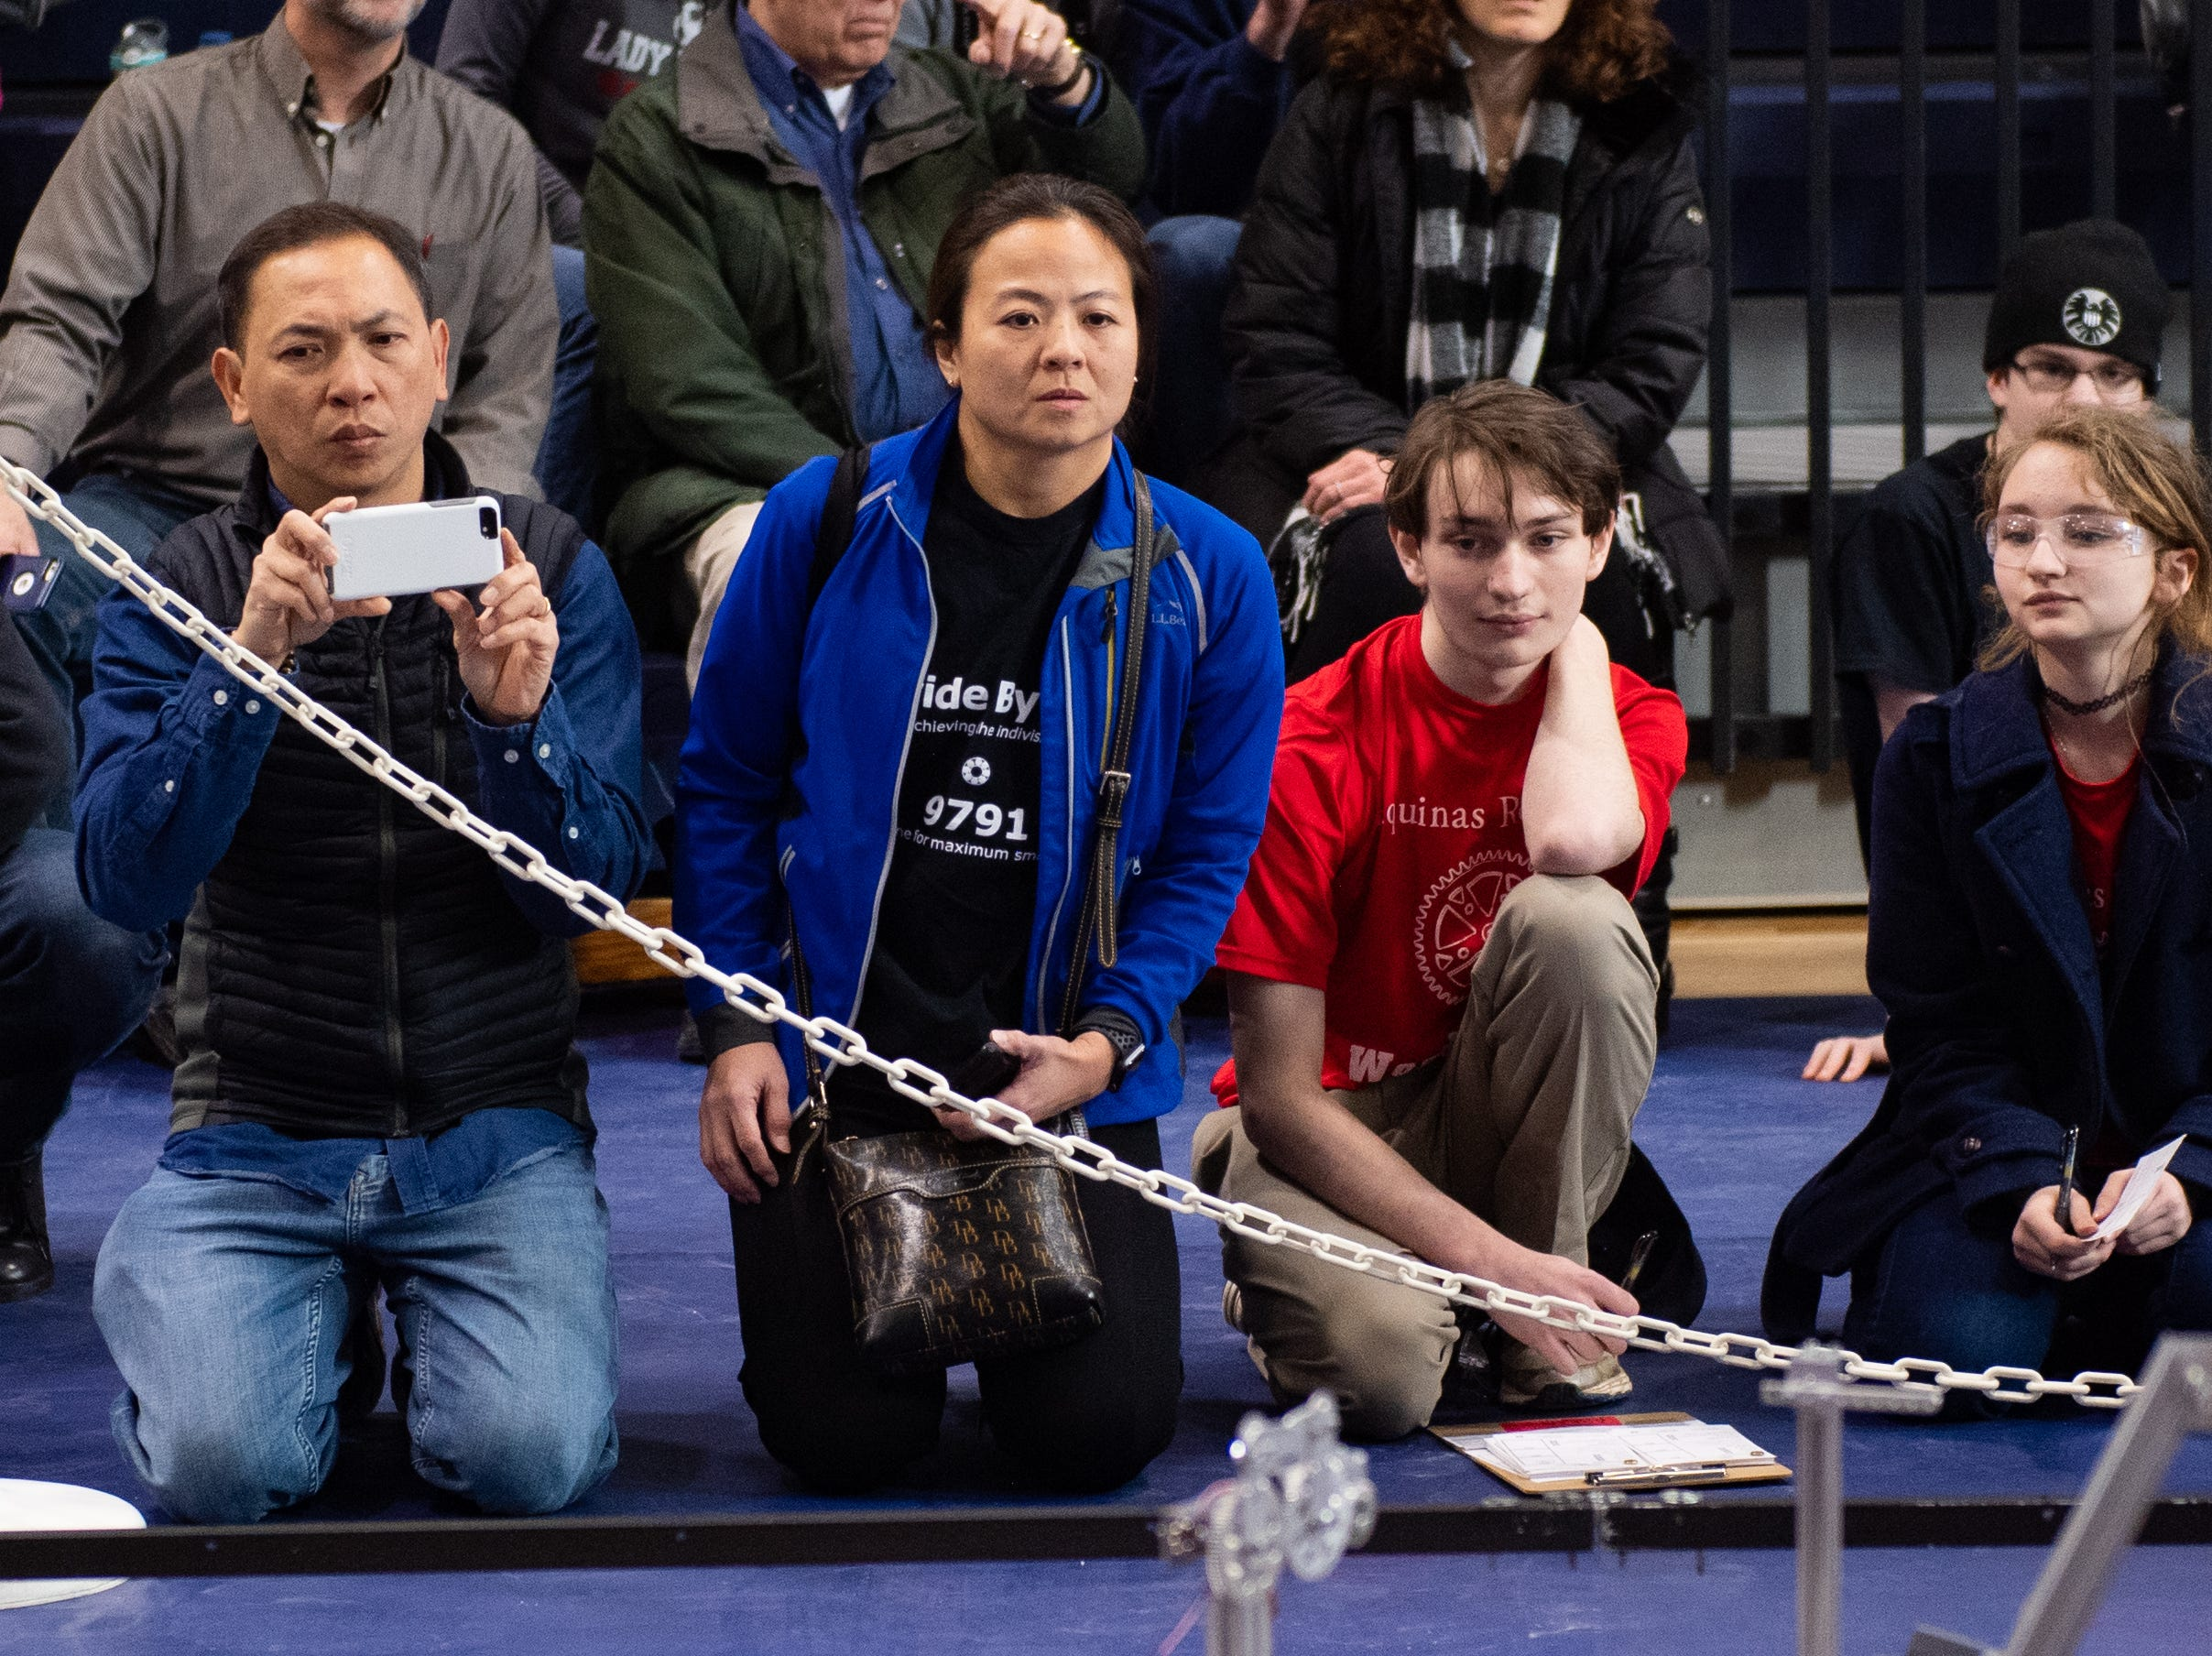 Parents, fans and fellow competitors watch each match closely during the First Tech Challenge robotics competition at Penn State York, February 2, 2019.